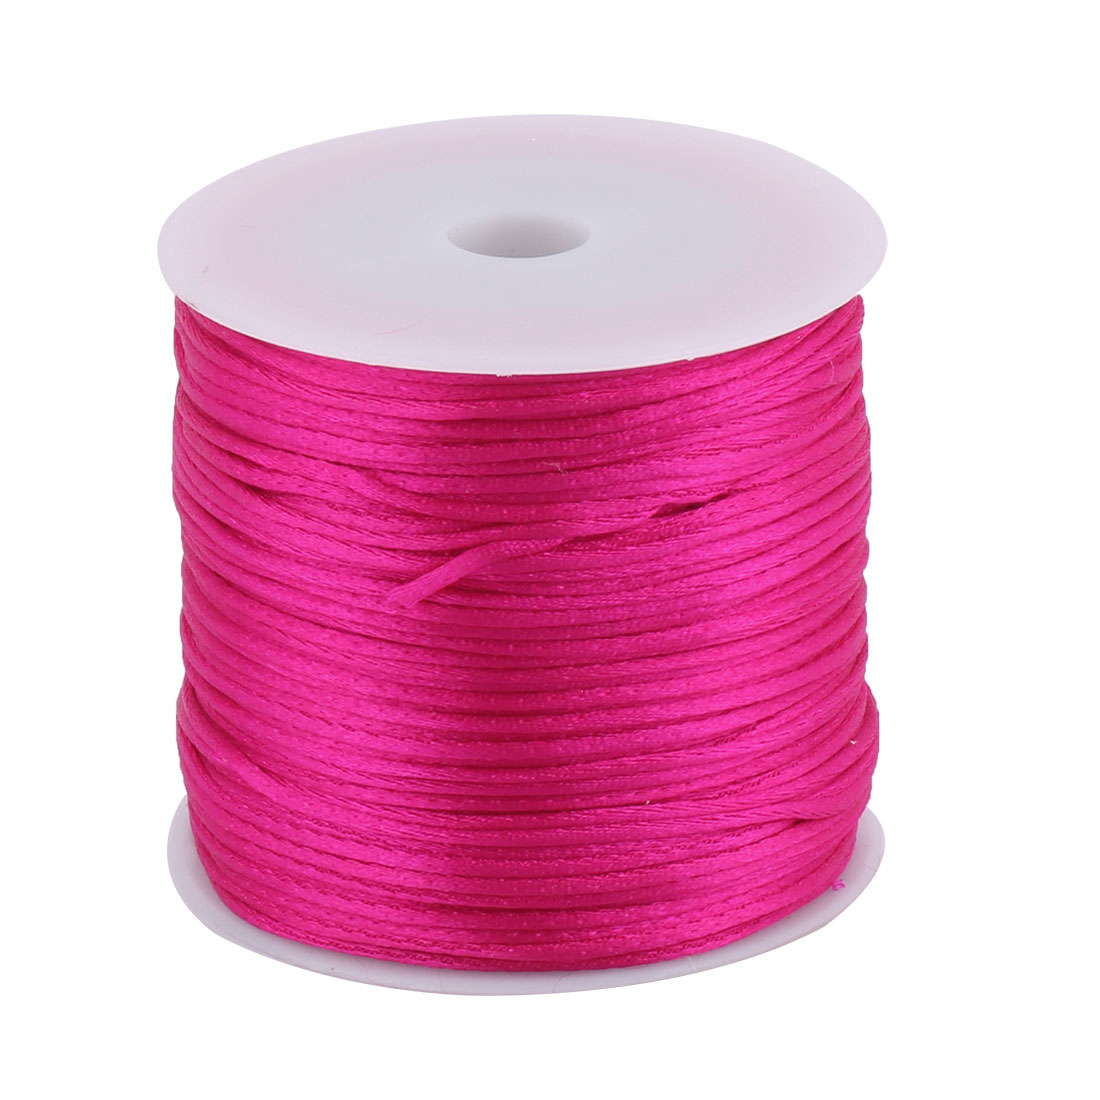 Nylon Handicraft DIY Knit Fan Decor Pendant Cord Fuchsia 1.5mm Dia 78.7 Yards